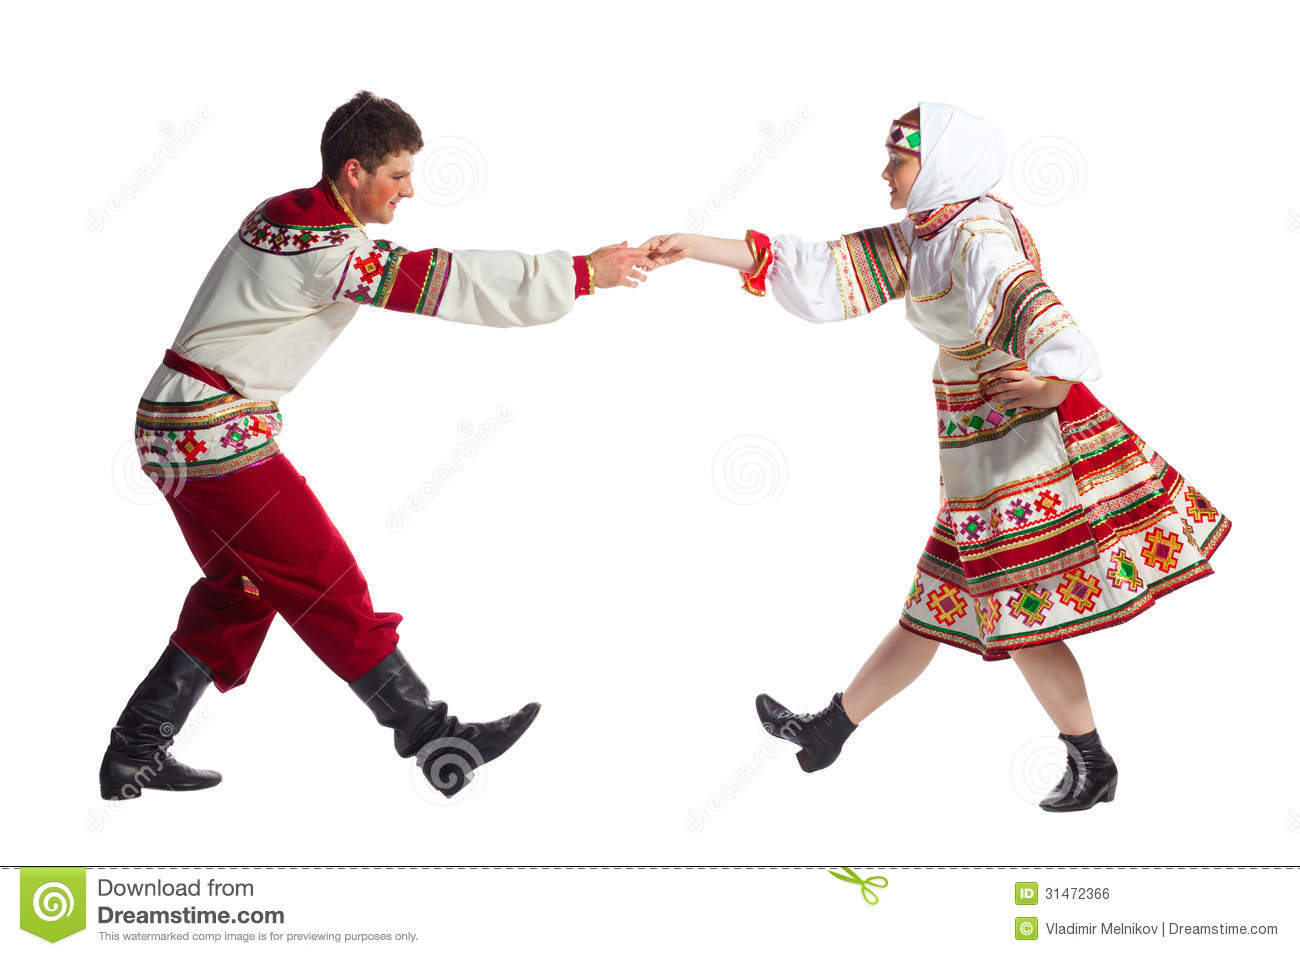 I like a russian guy dancing